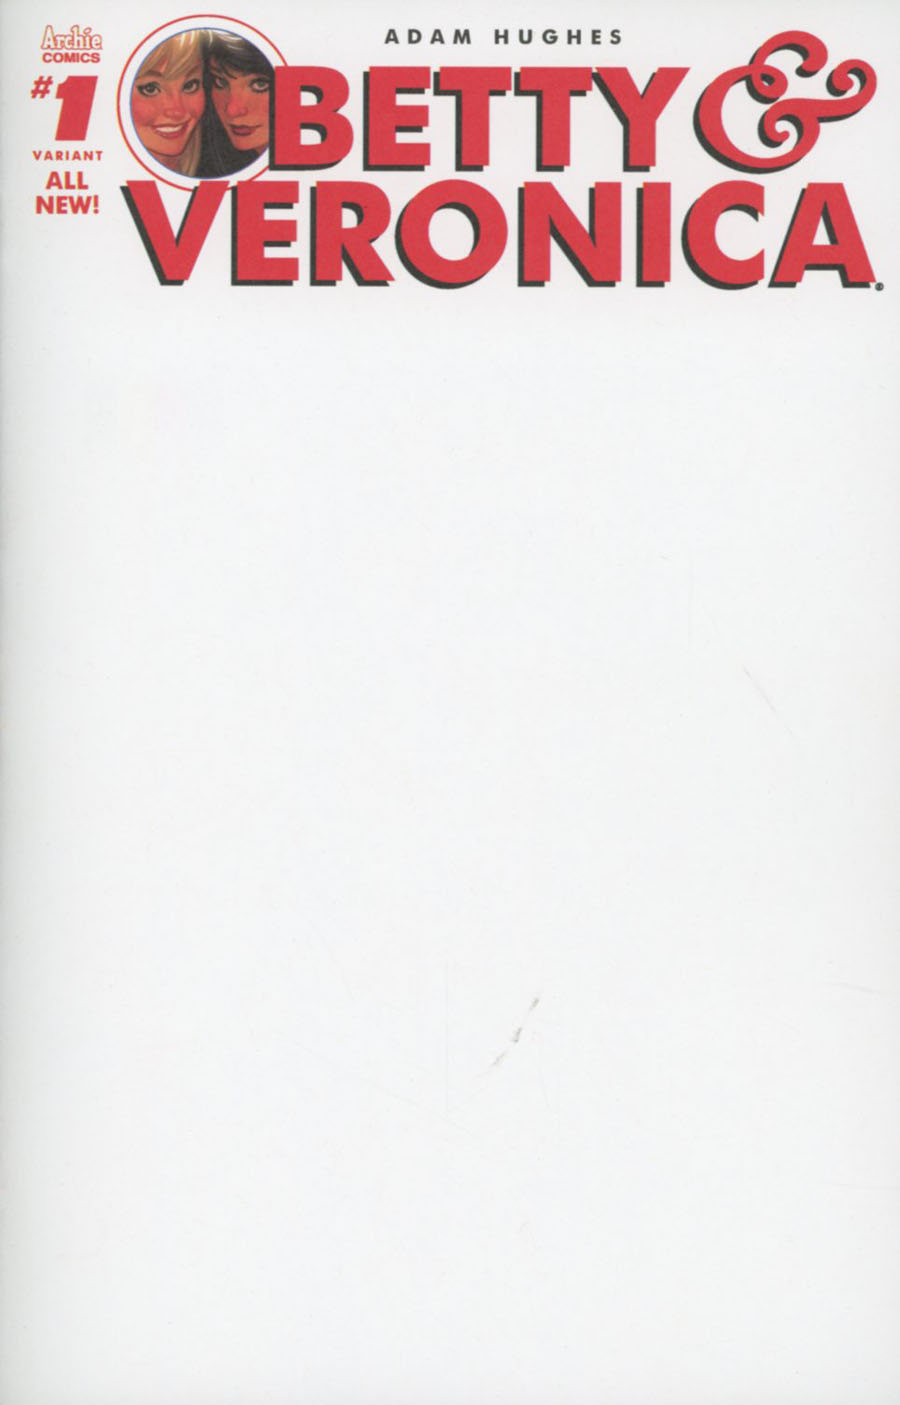 Betty & Veronica Vol 2 #1 Cover Y Variant Blank Cover